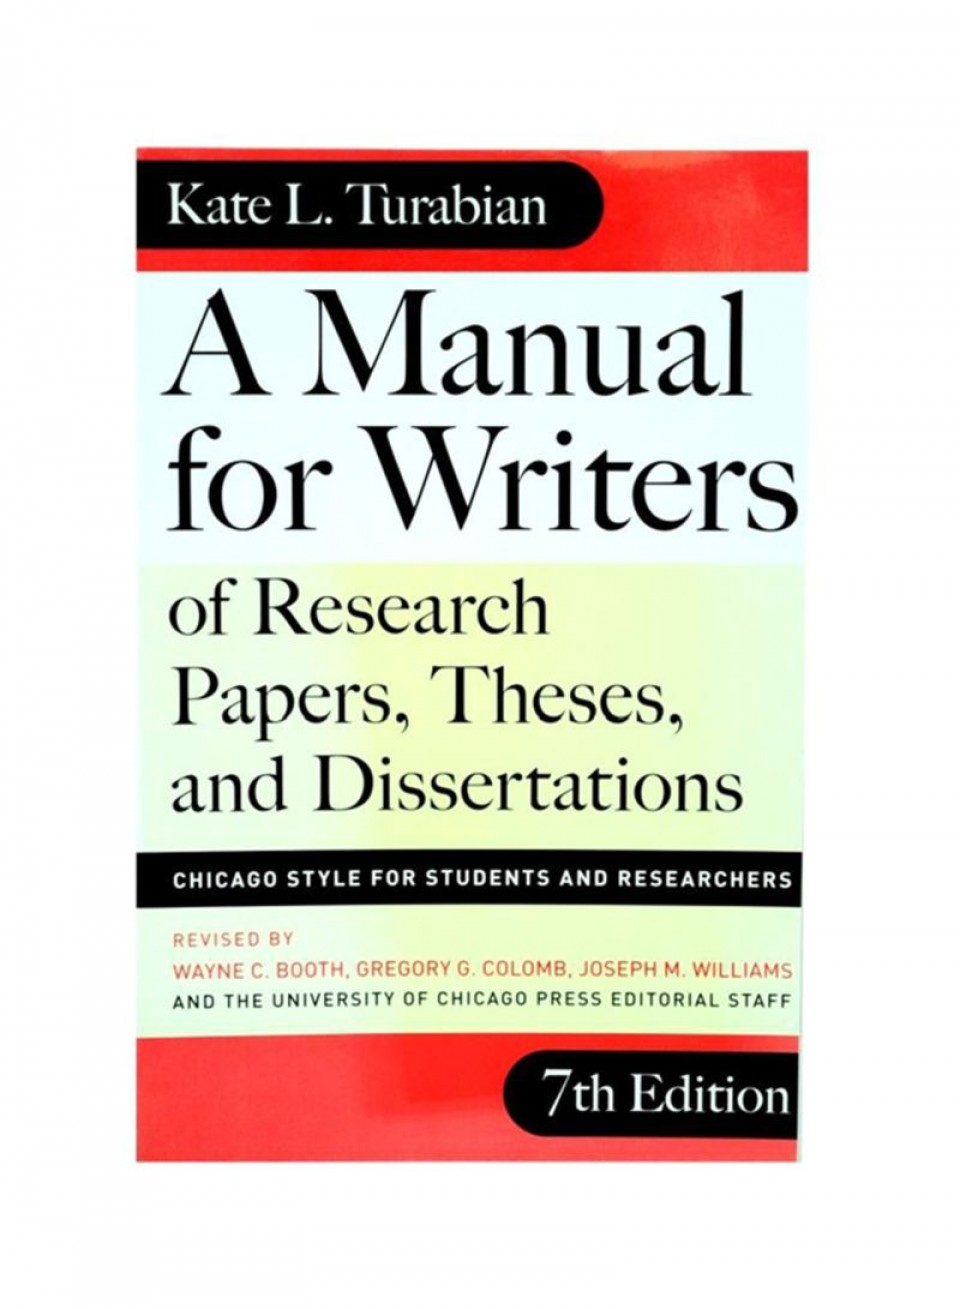 021 Research Paper N21270079a 1 Manual For Writers Of Papers Theses And Magnificent Dissertations A Amazon 9th Edition 8th 13 960